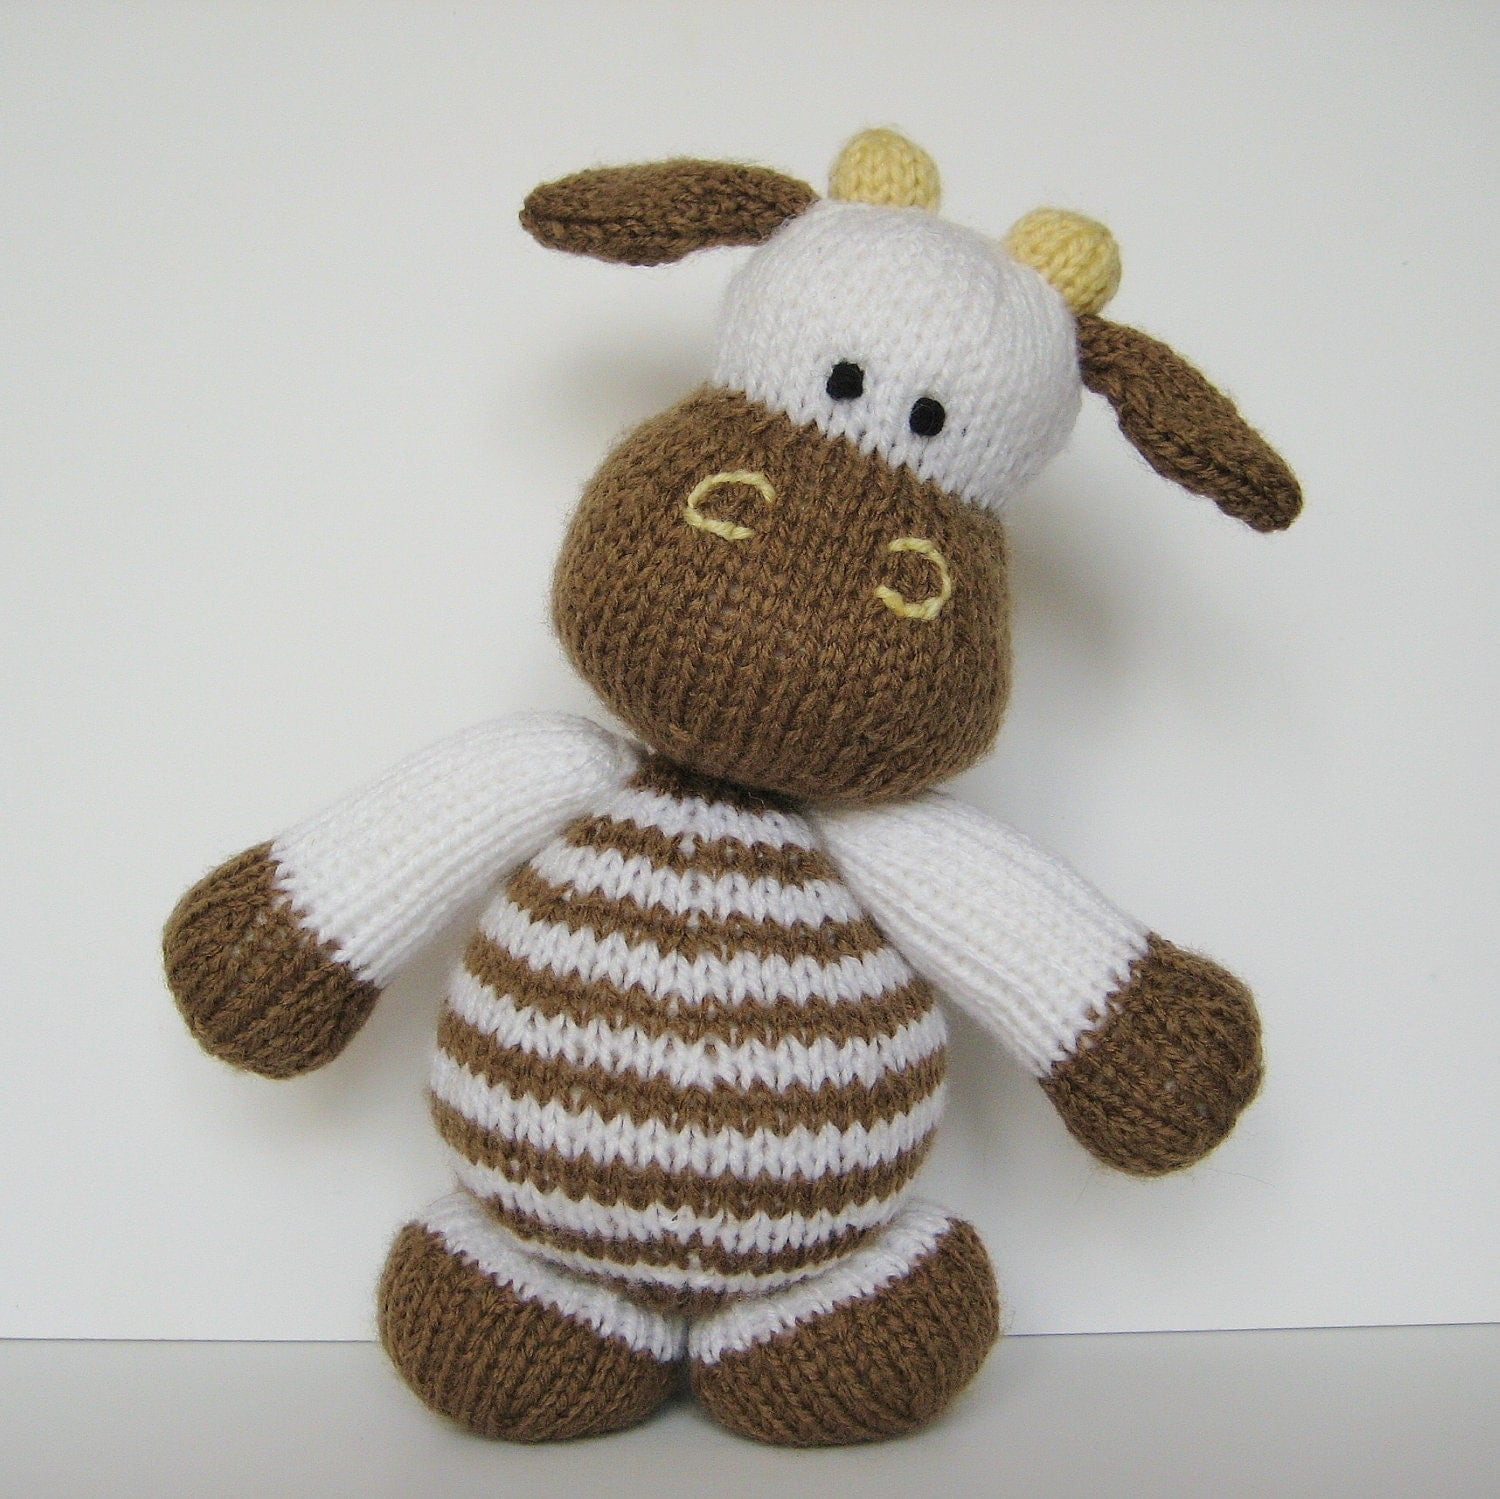 Free Animal Knitting Patterns : Milkshake the Cow toy knitting pattern by fluffandfuzz on Etsy